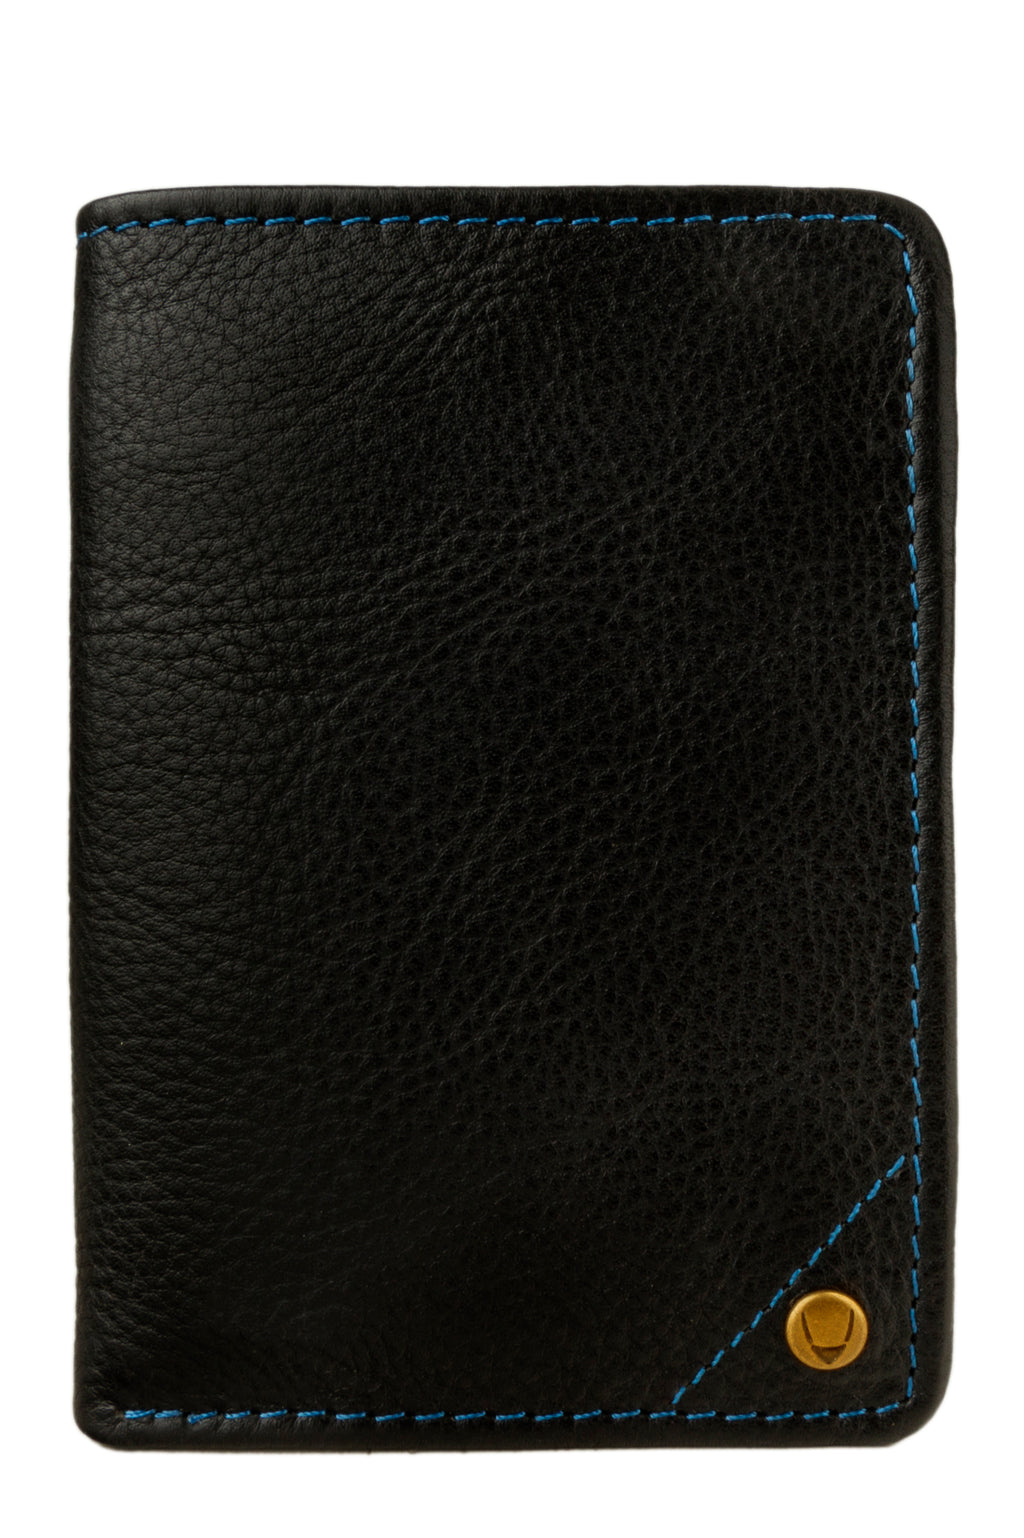 Best Leather Wallets - Hidesign Angle Stitch Leather Slim Trifold Wallet